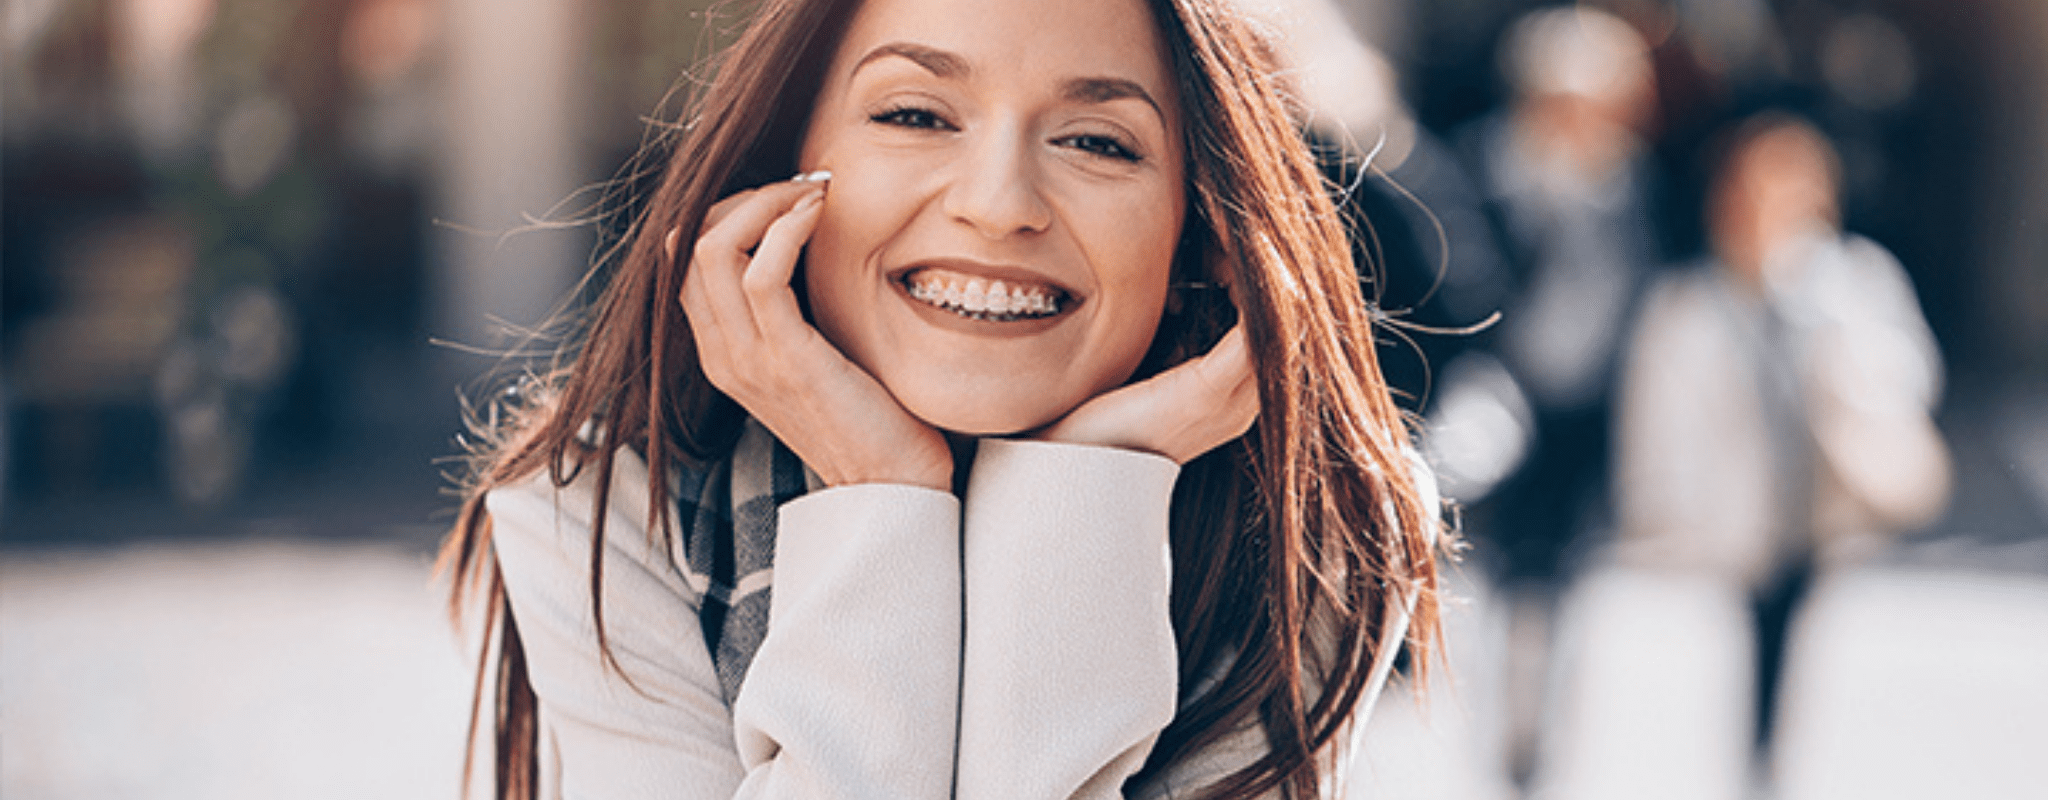 5 Tips to Survive Your First Day With Braces